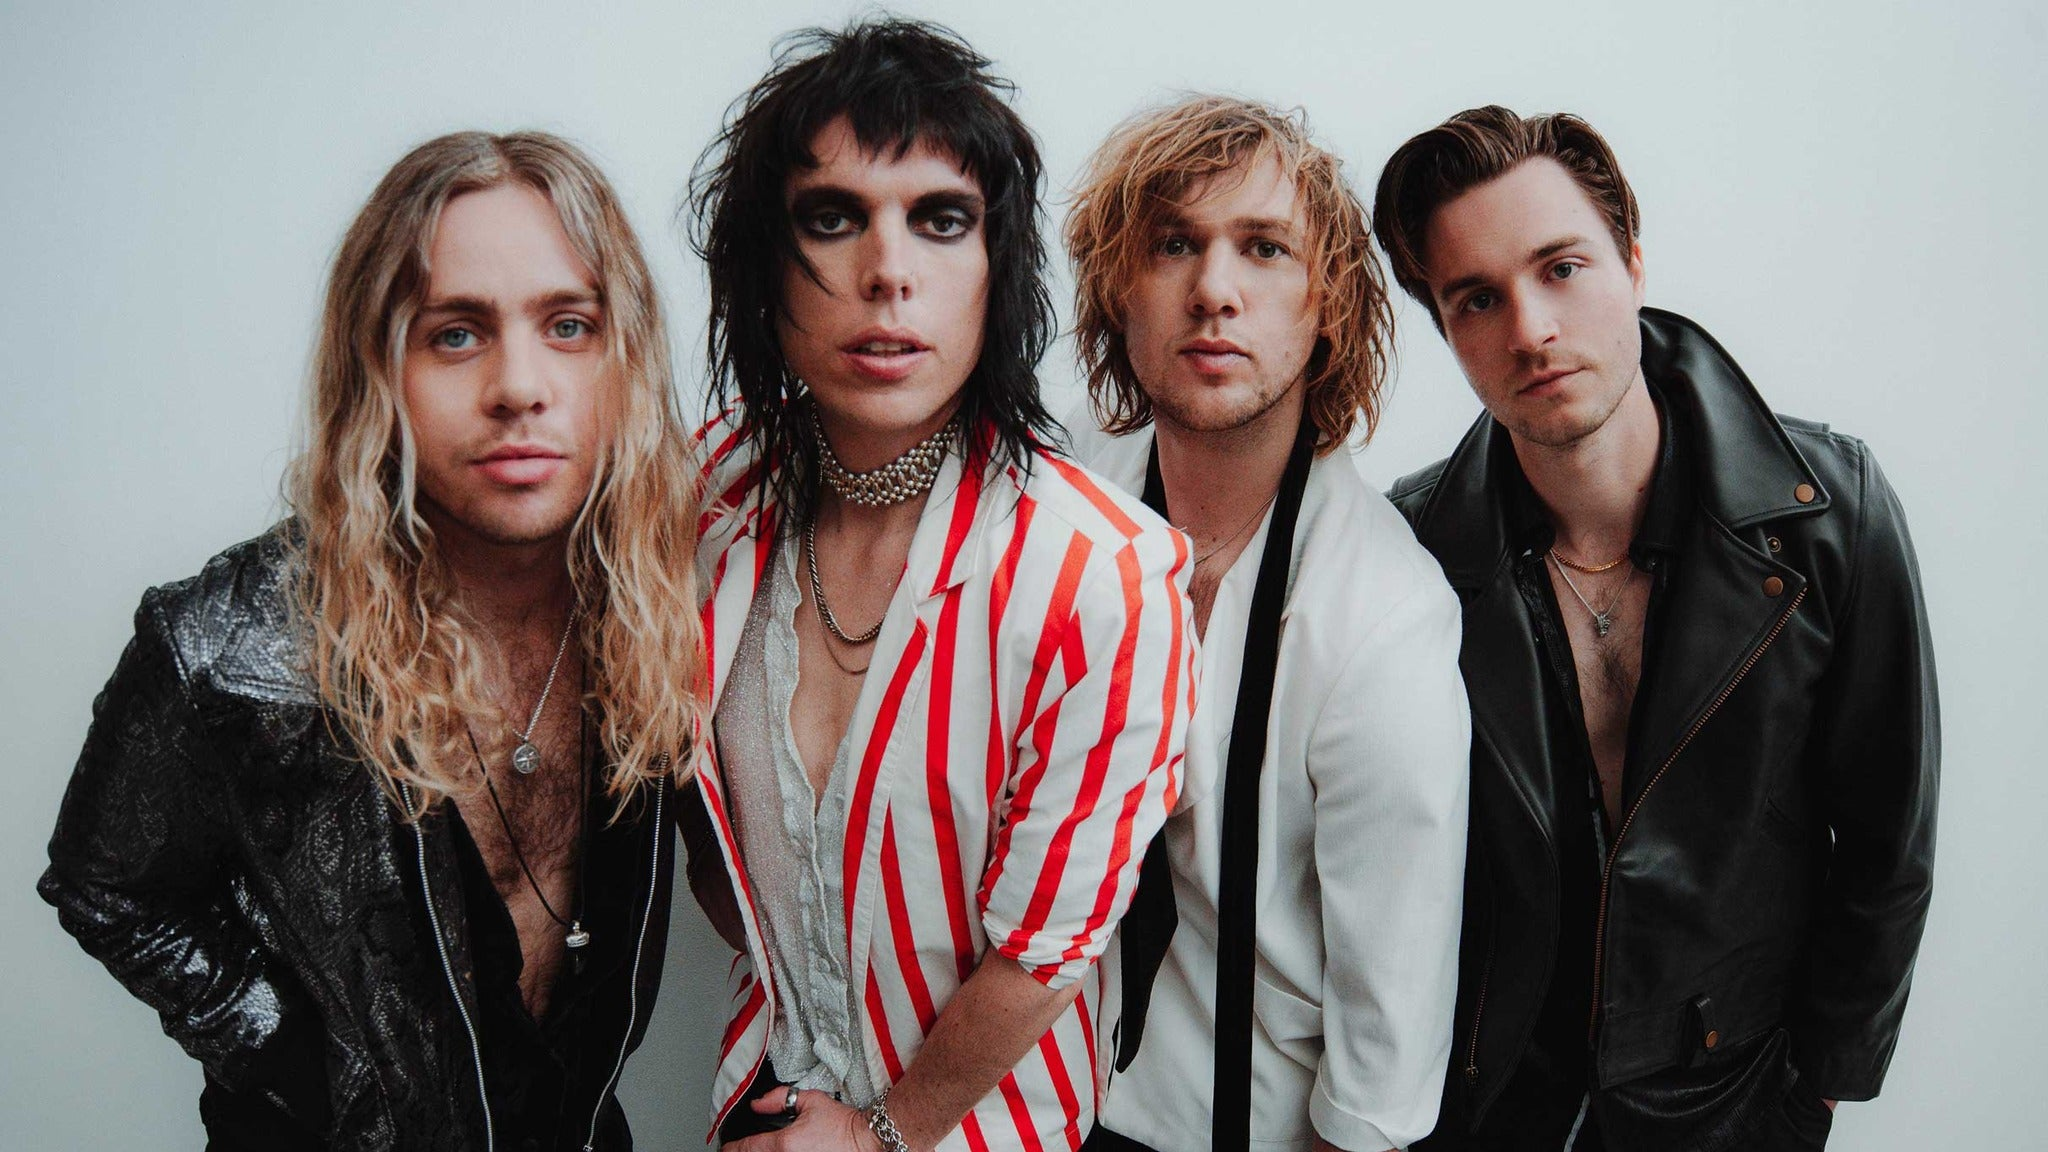 presale password for The Struts - Strange Days are Over Tour tickets in New Orleans - LA (House of Blues New Orleans )